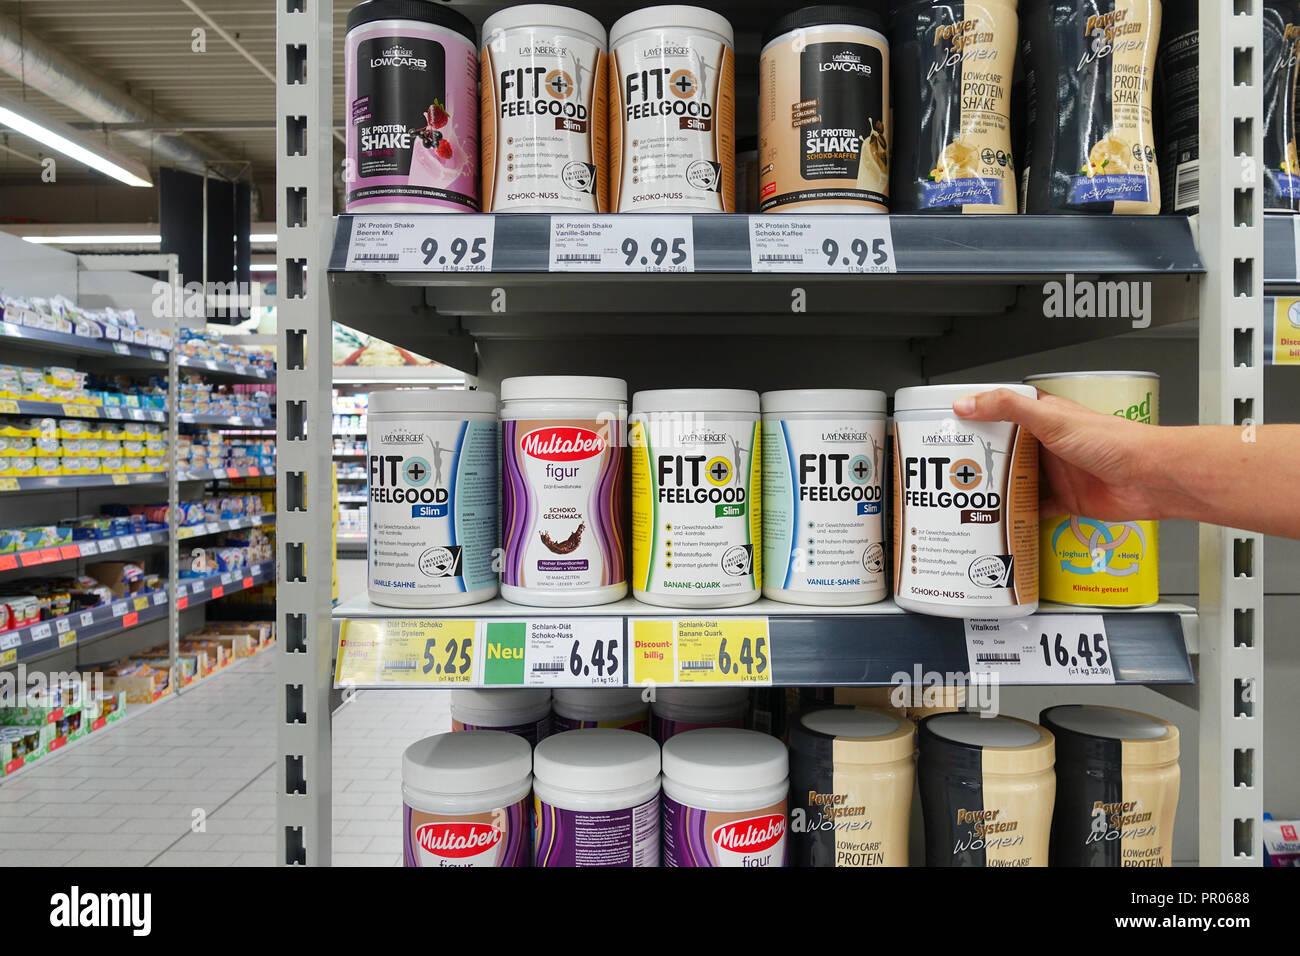 High protein drinks and bodybuilding supplements in a supermarket - Stock Image